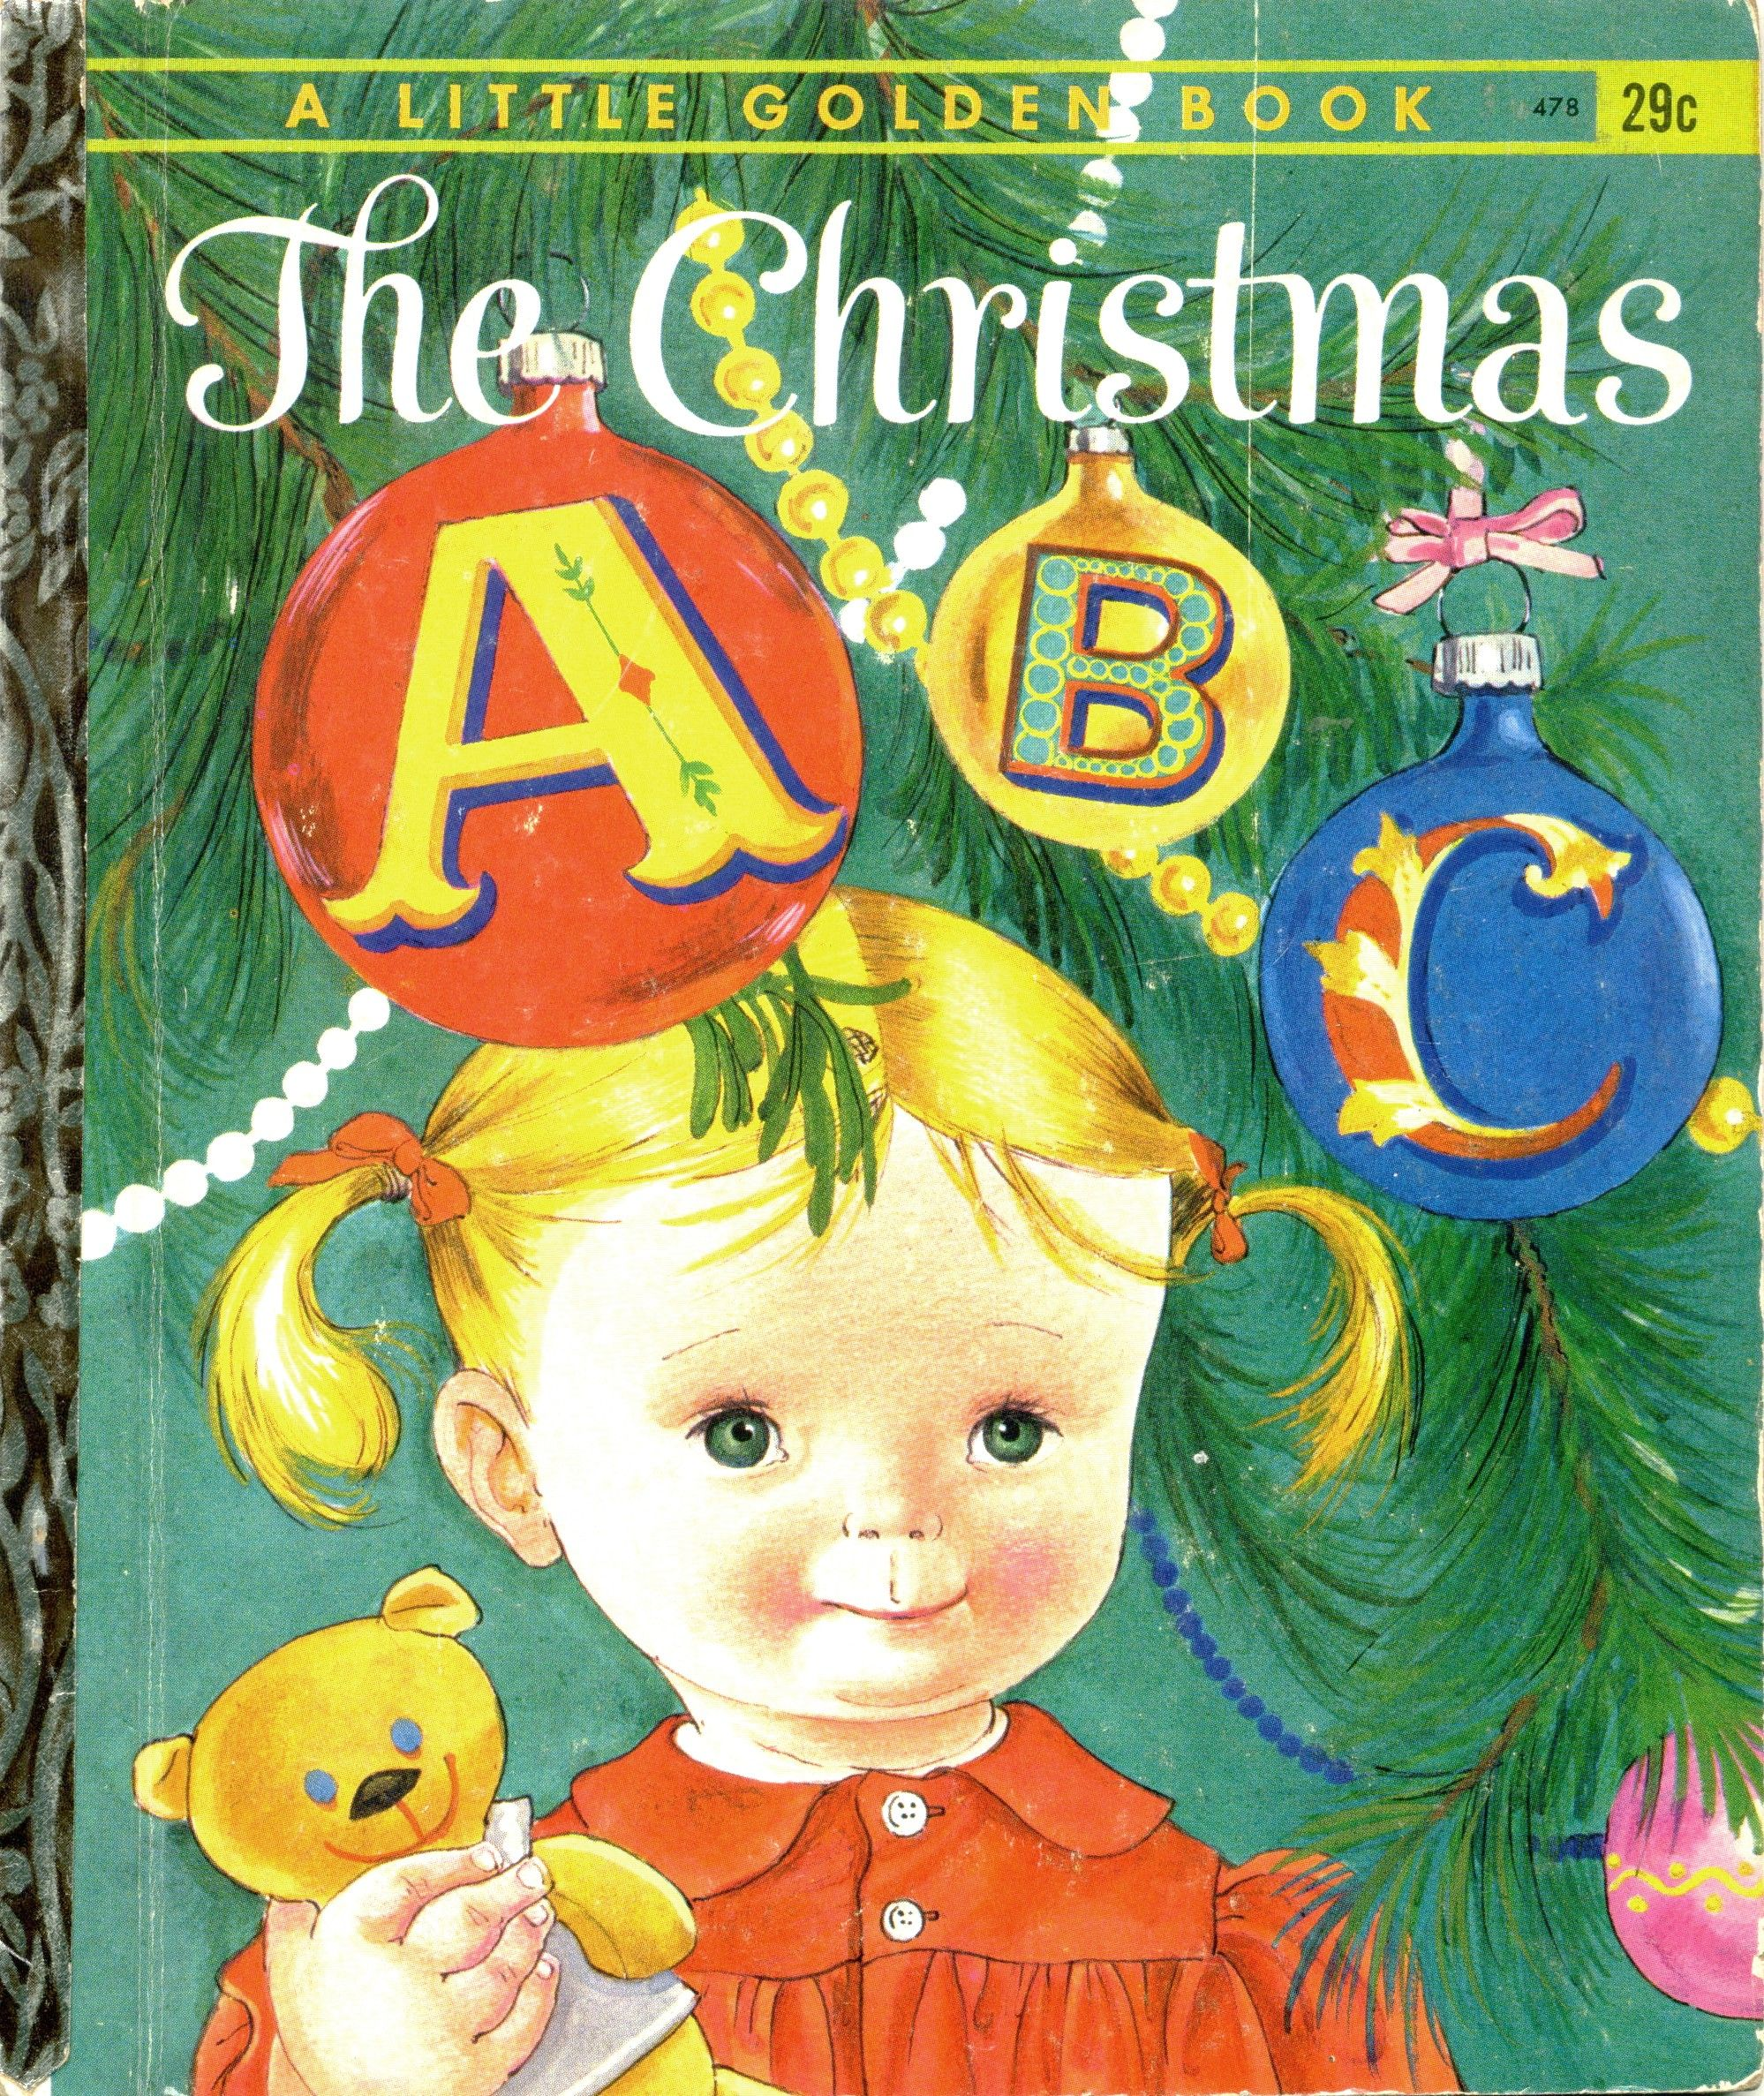 The Christmas ABC, 1962, A edition...pictures by Eloise Wilkin